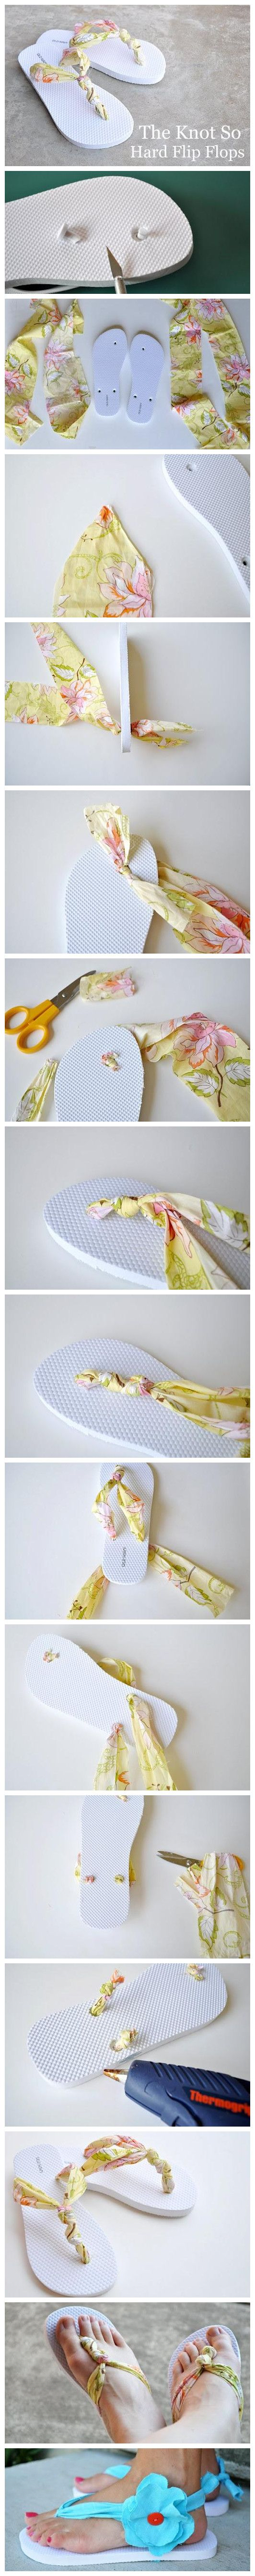 DIY Flip FlopsFlipflops, Good Ideas, Flip Flops Diy, Diy Crafts, The Knots, Cute Ideas, Cool Ideas, Old Navy, Diy Flip